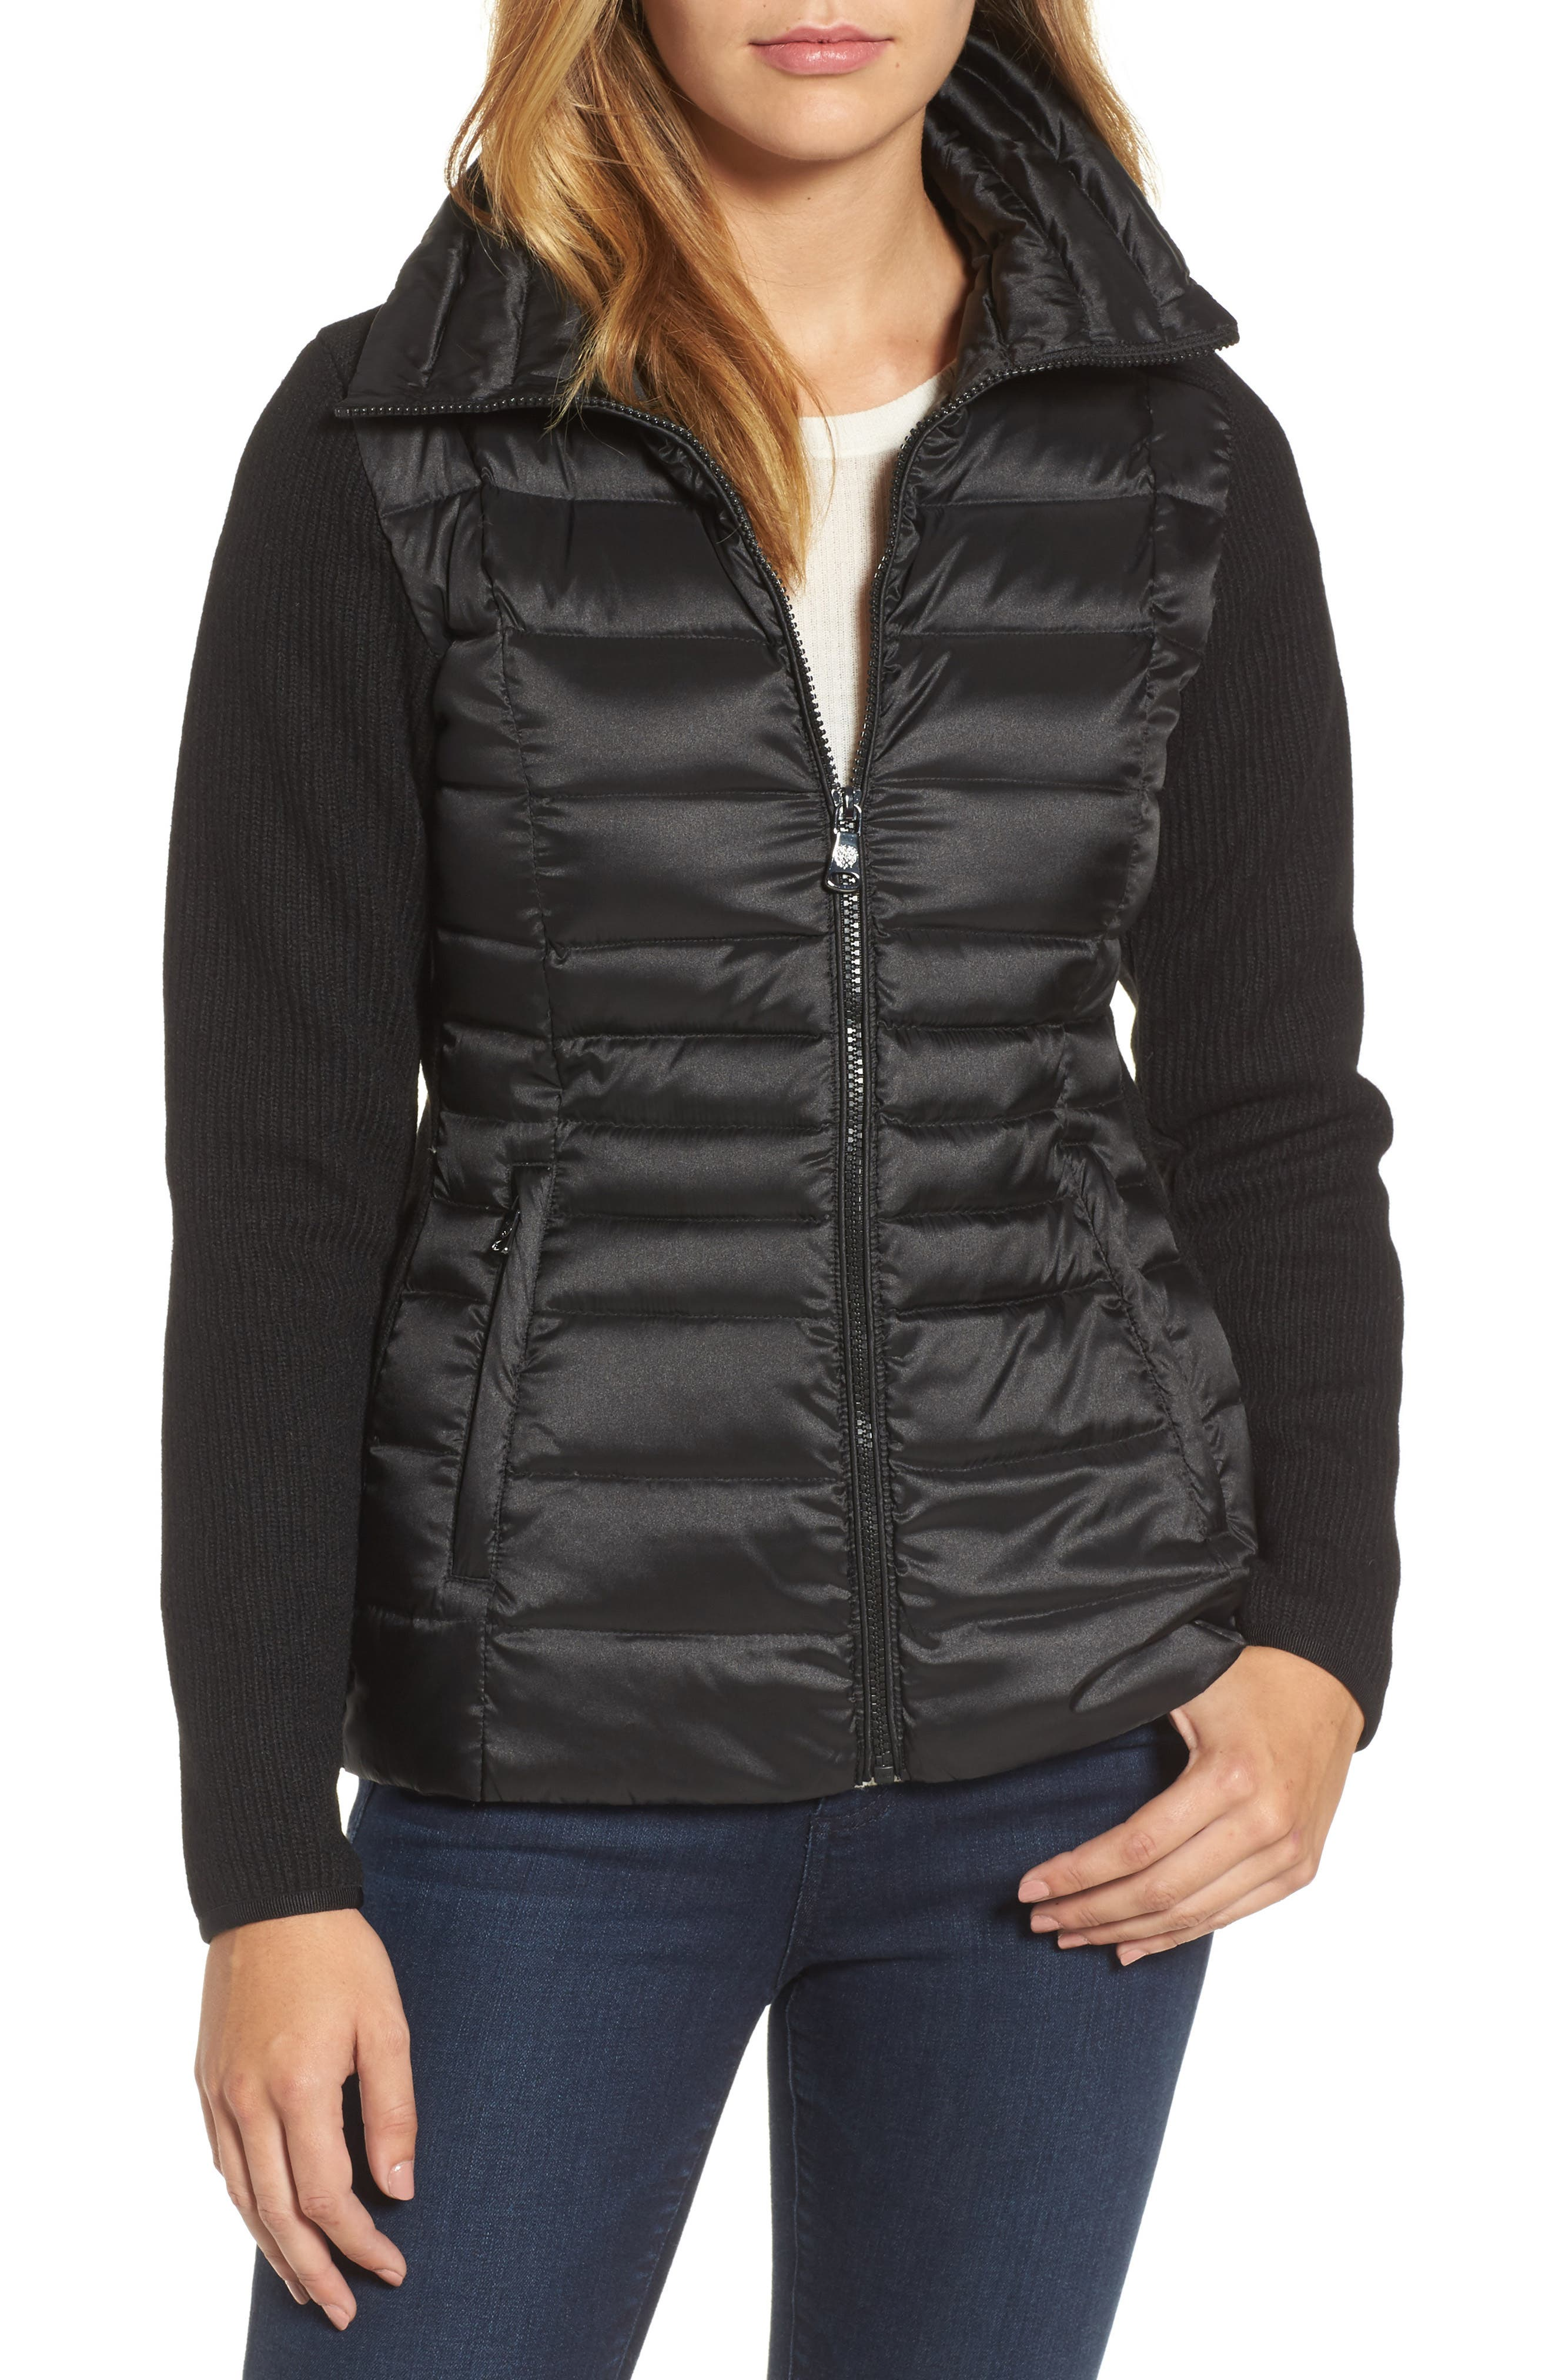 Alternate Image 1 Selected - Vince Camuto Mixed Media Down Jacket